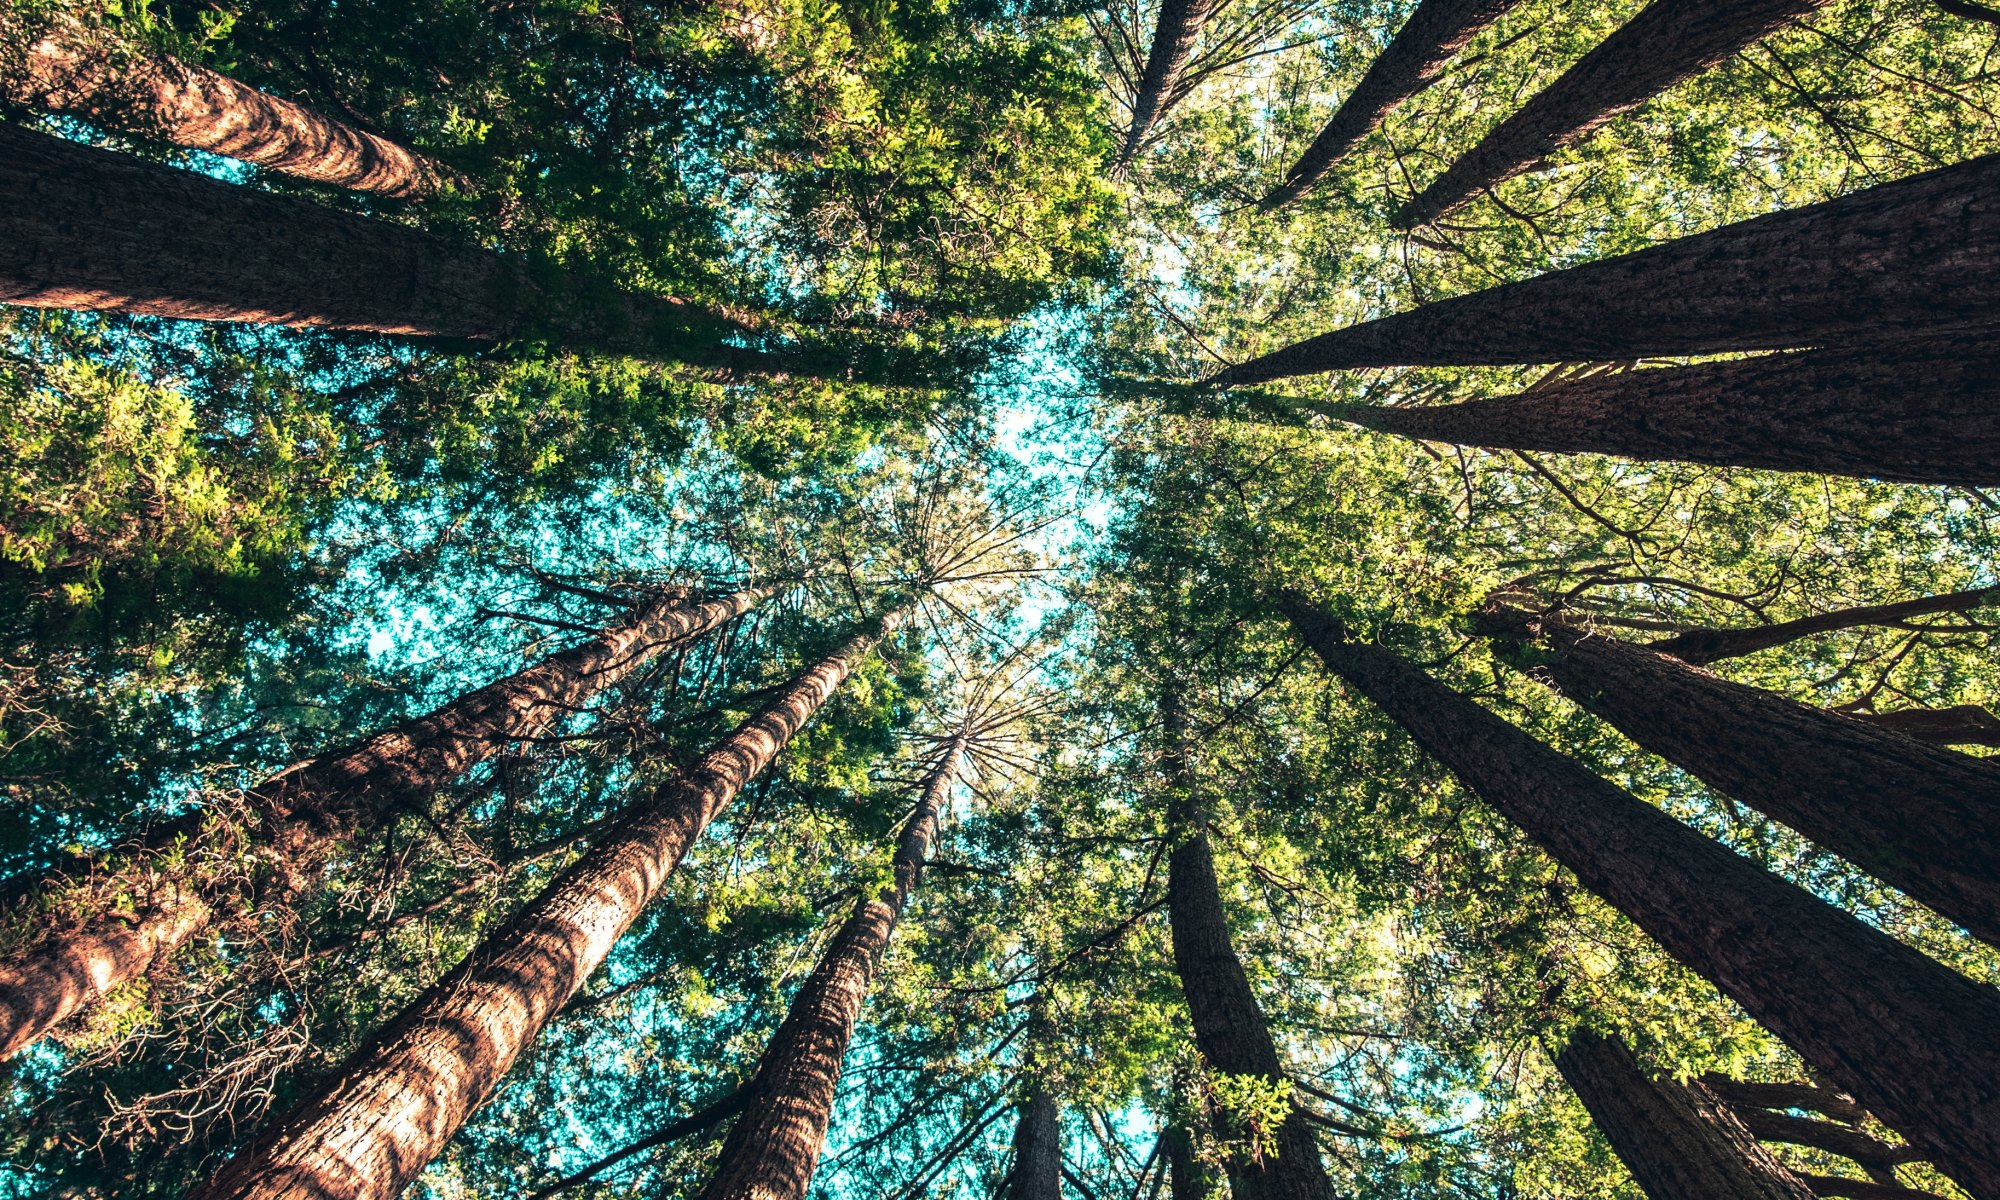 In nature looking up at trees during daytime